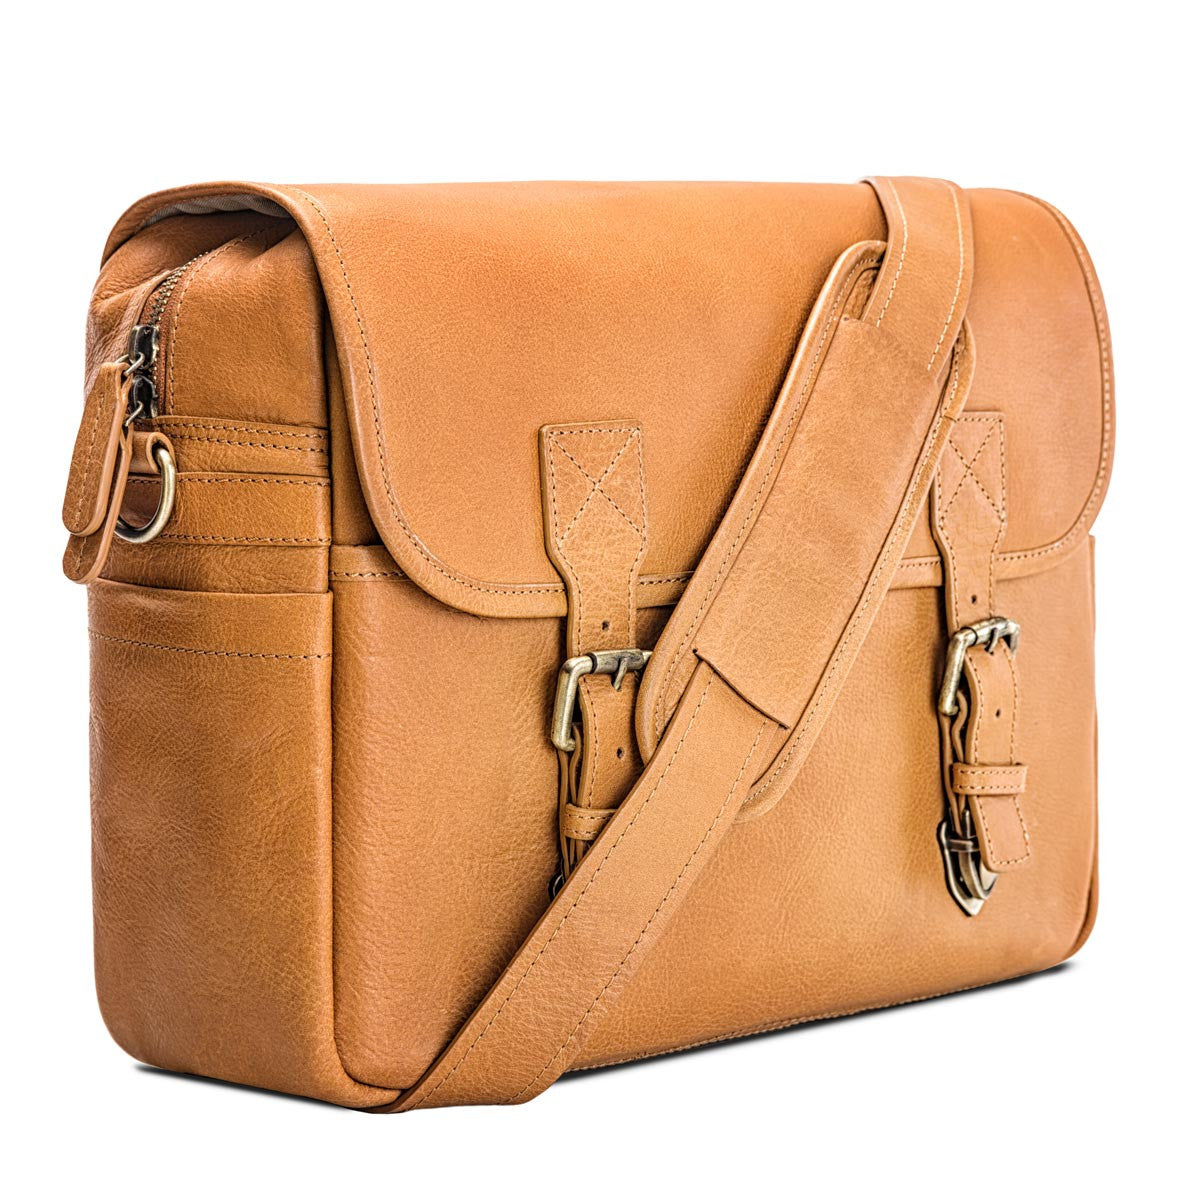 2b30ca6cafe116 ... Blackforest bags; Every day bag, travel bag, slr camera messenger bag  in Tan leather by Blackforest; Rimo i ...